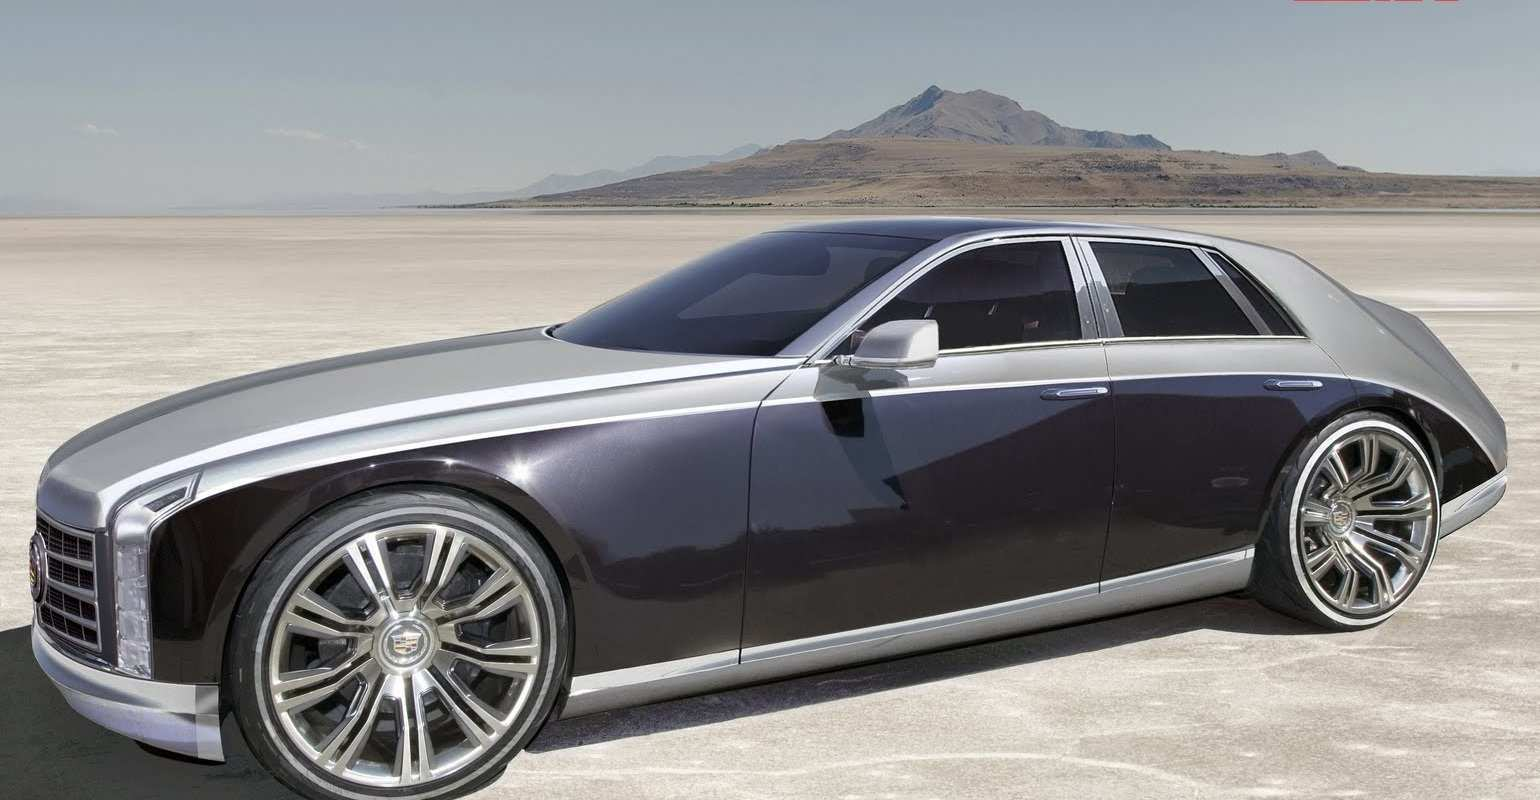 84 Great 2020 Cadillac Deville Coupe Pricing for 2020 Cadillac Deville Coupe